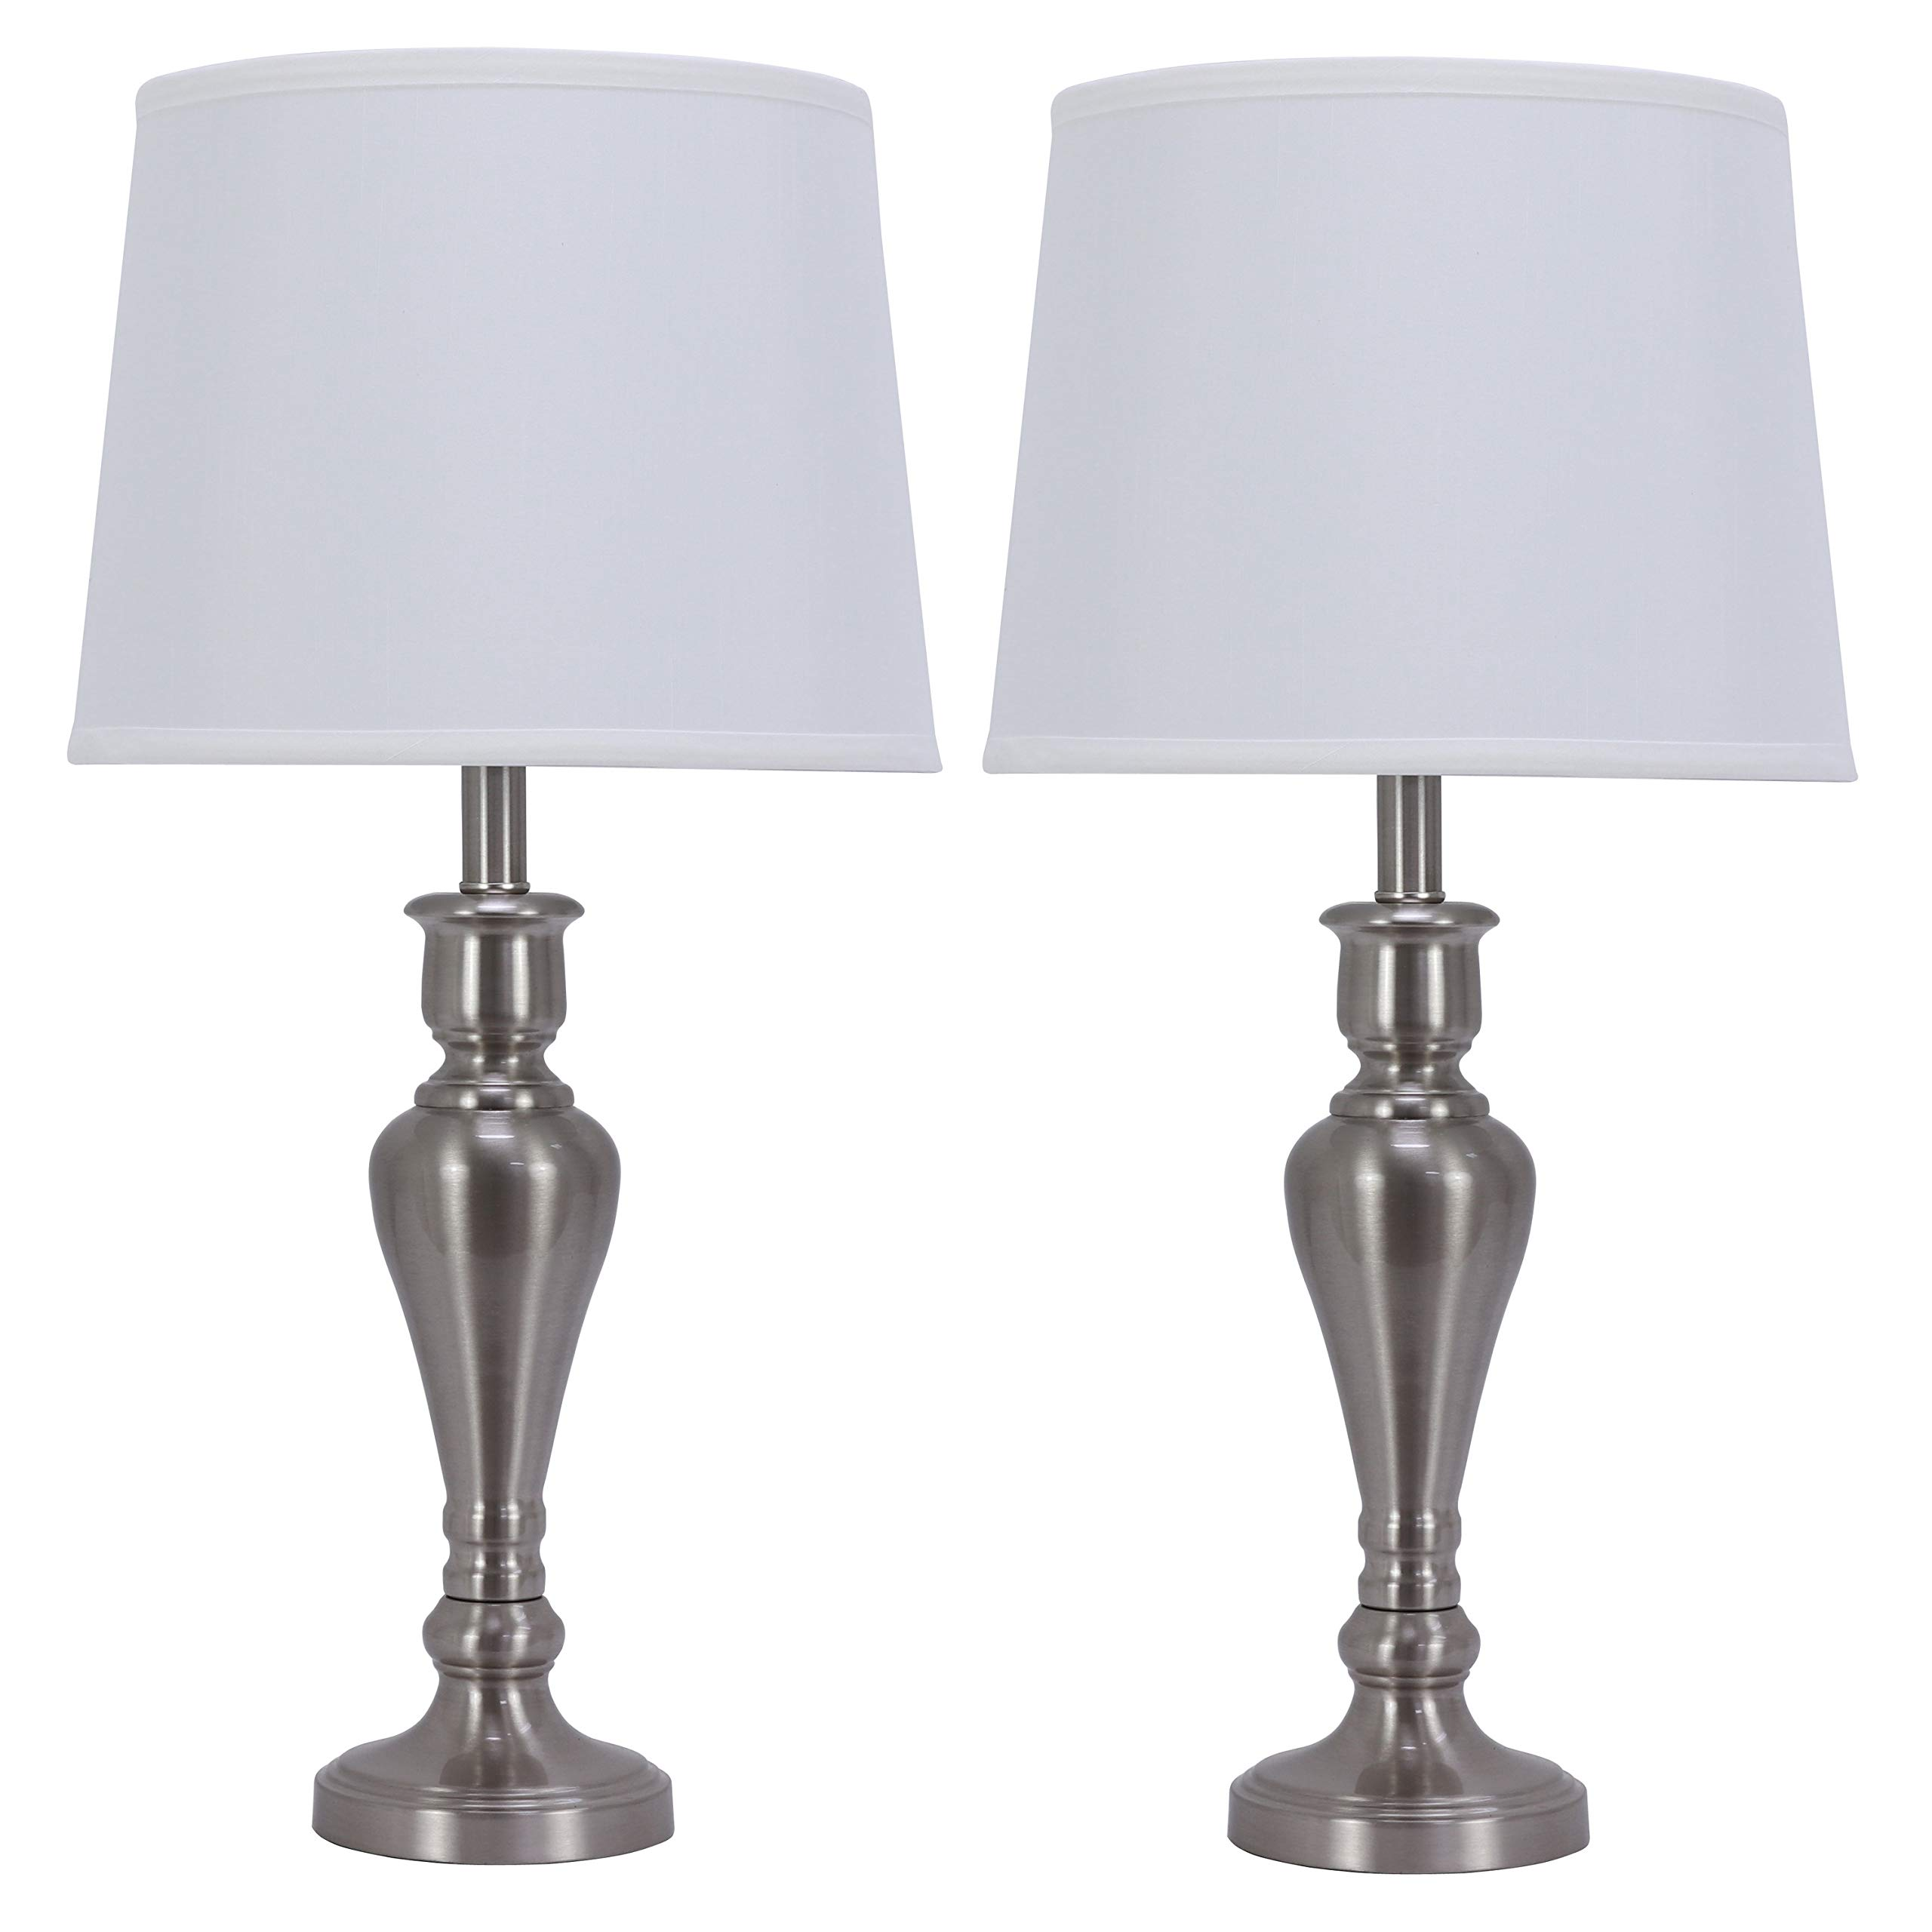 Decor Therapy MP1052 Table Lamps, 13x13x26, Brushed Steel